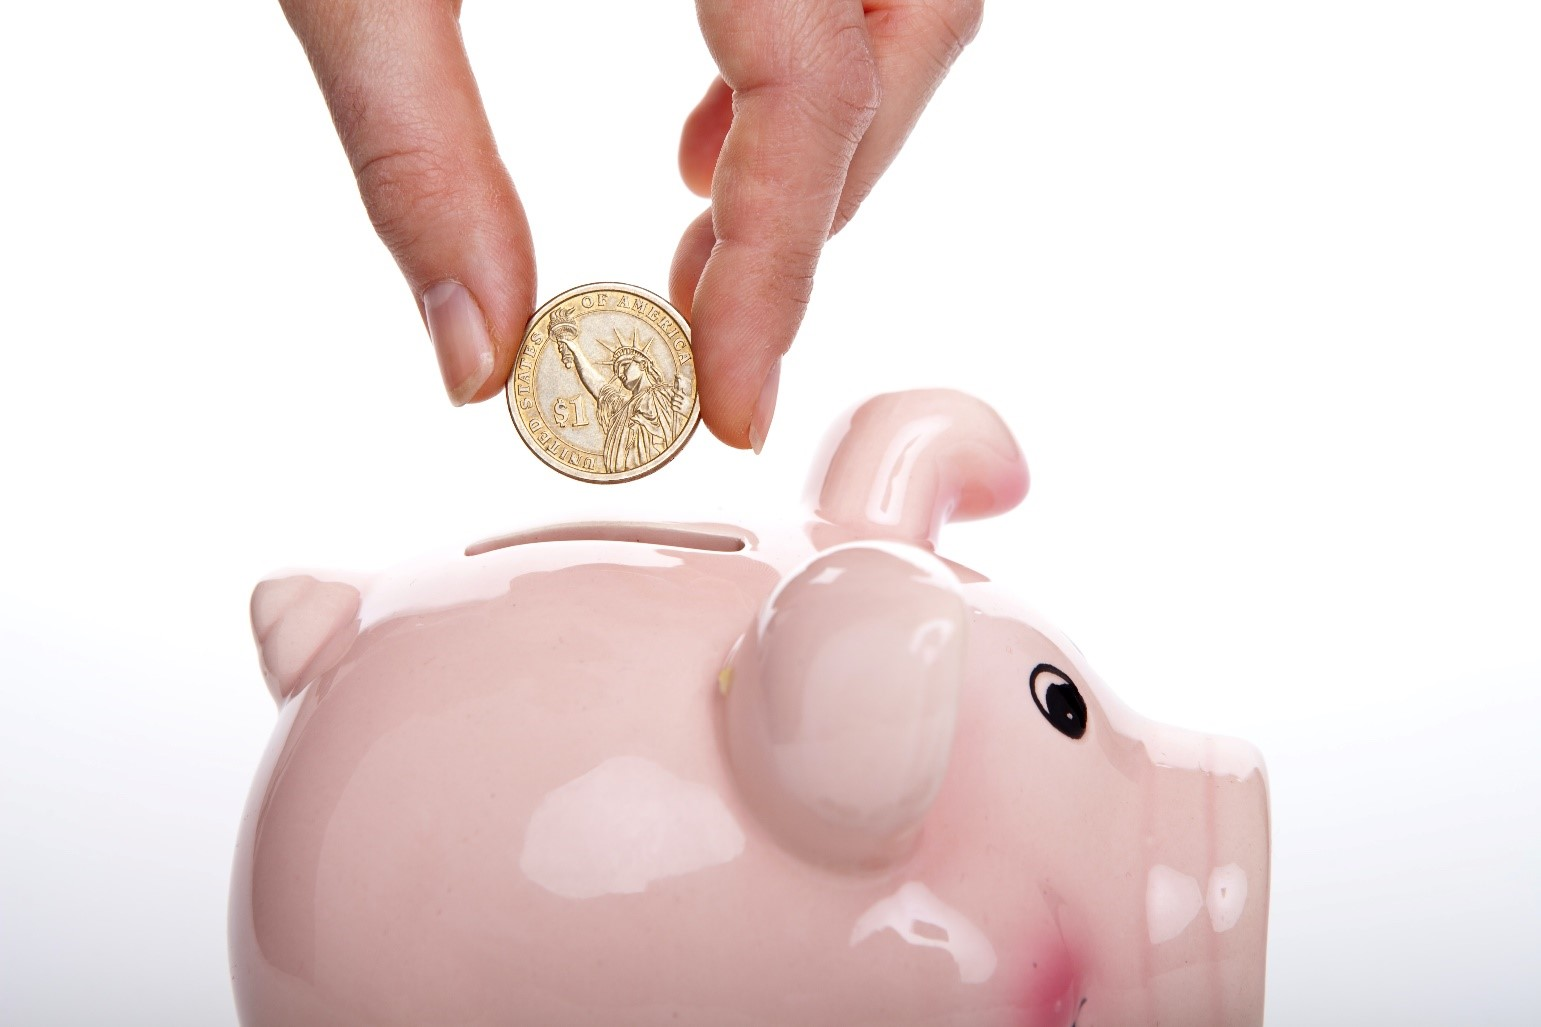 A hand placing a coin into a pink piggy bank.